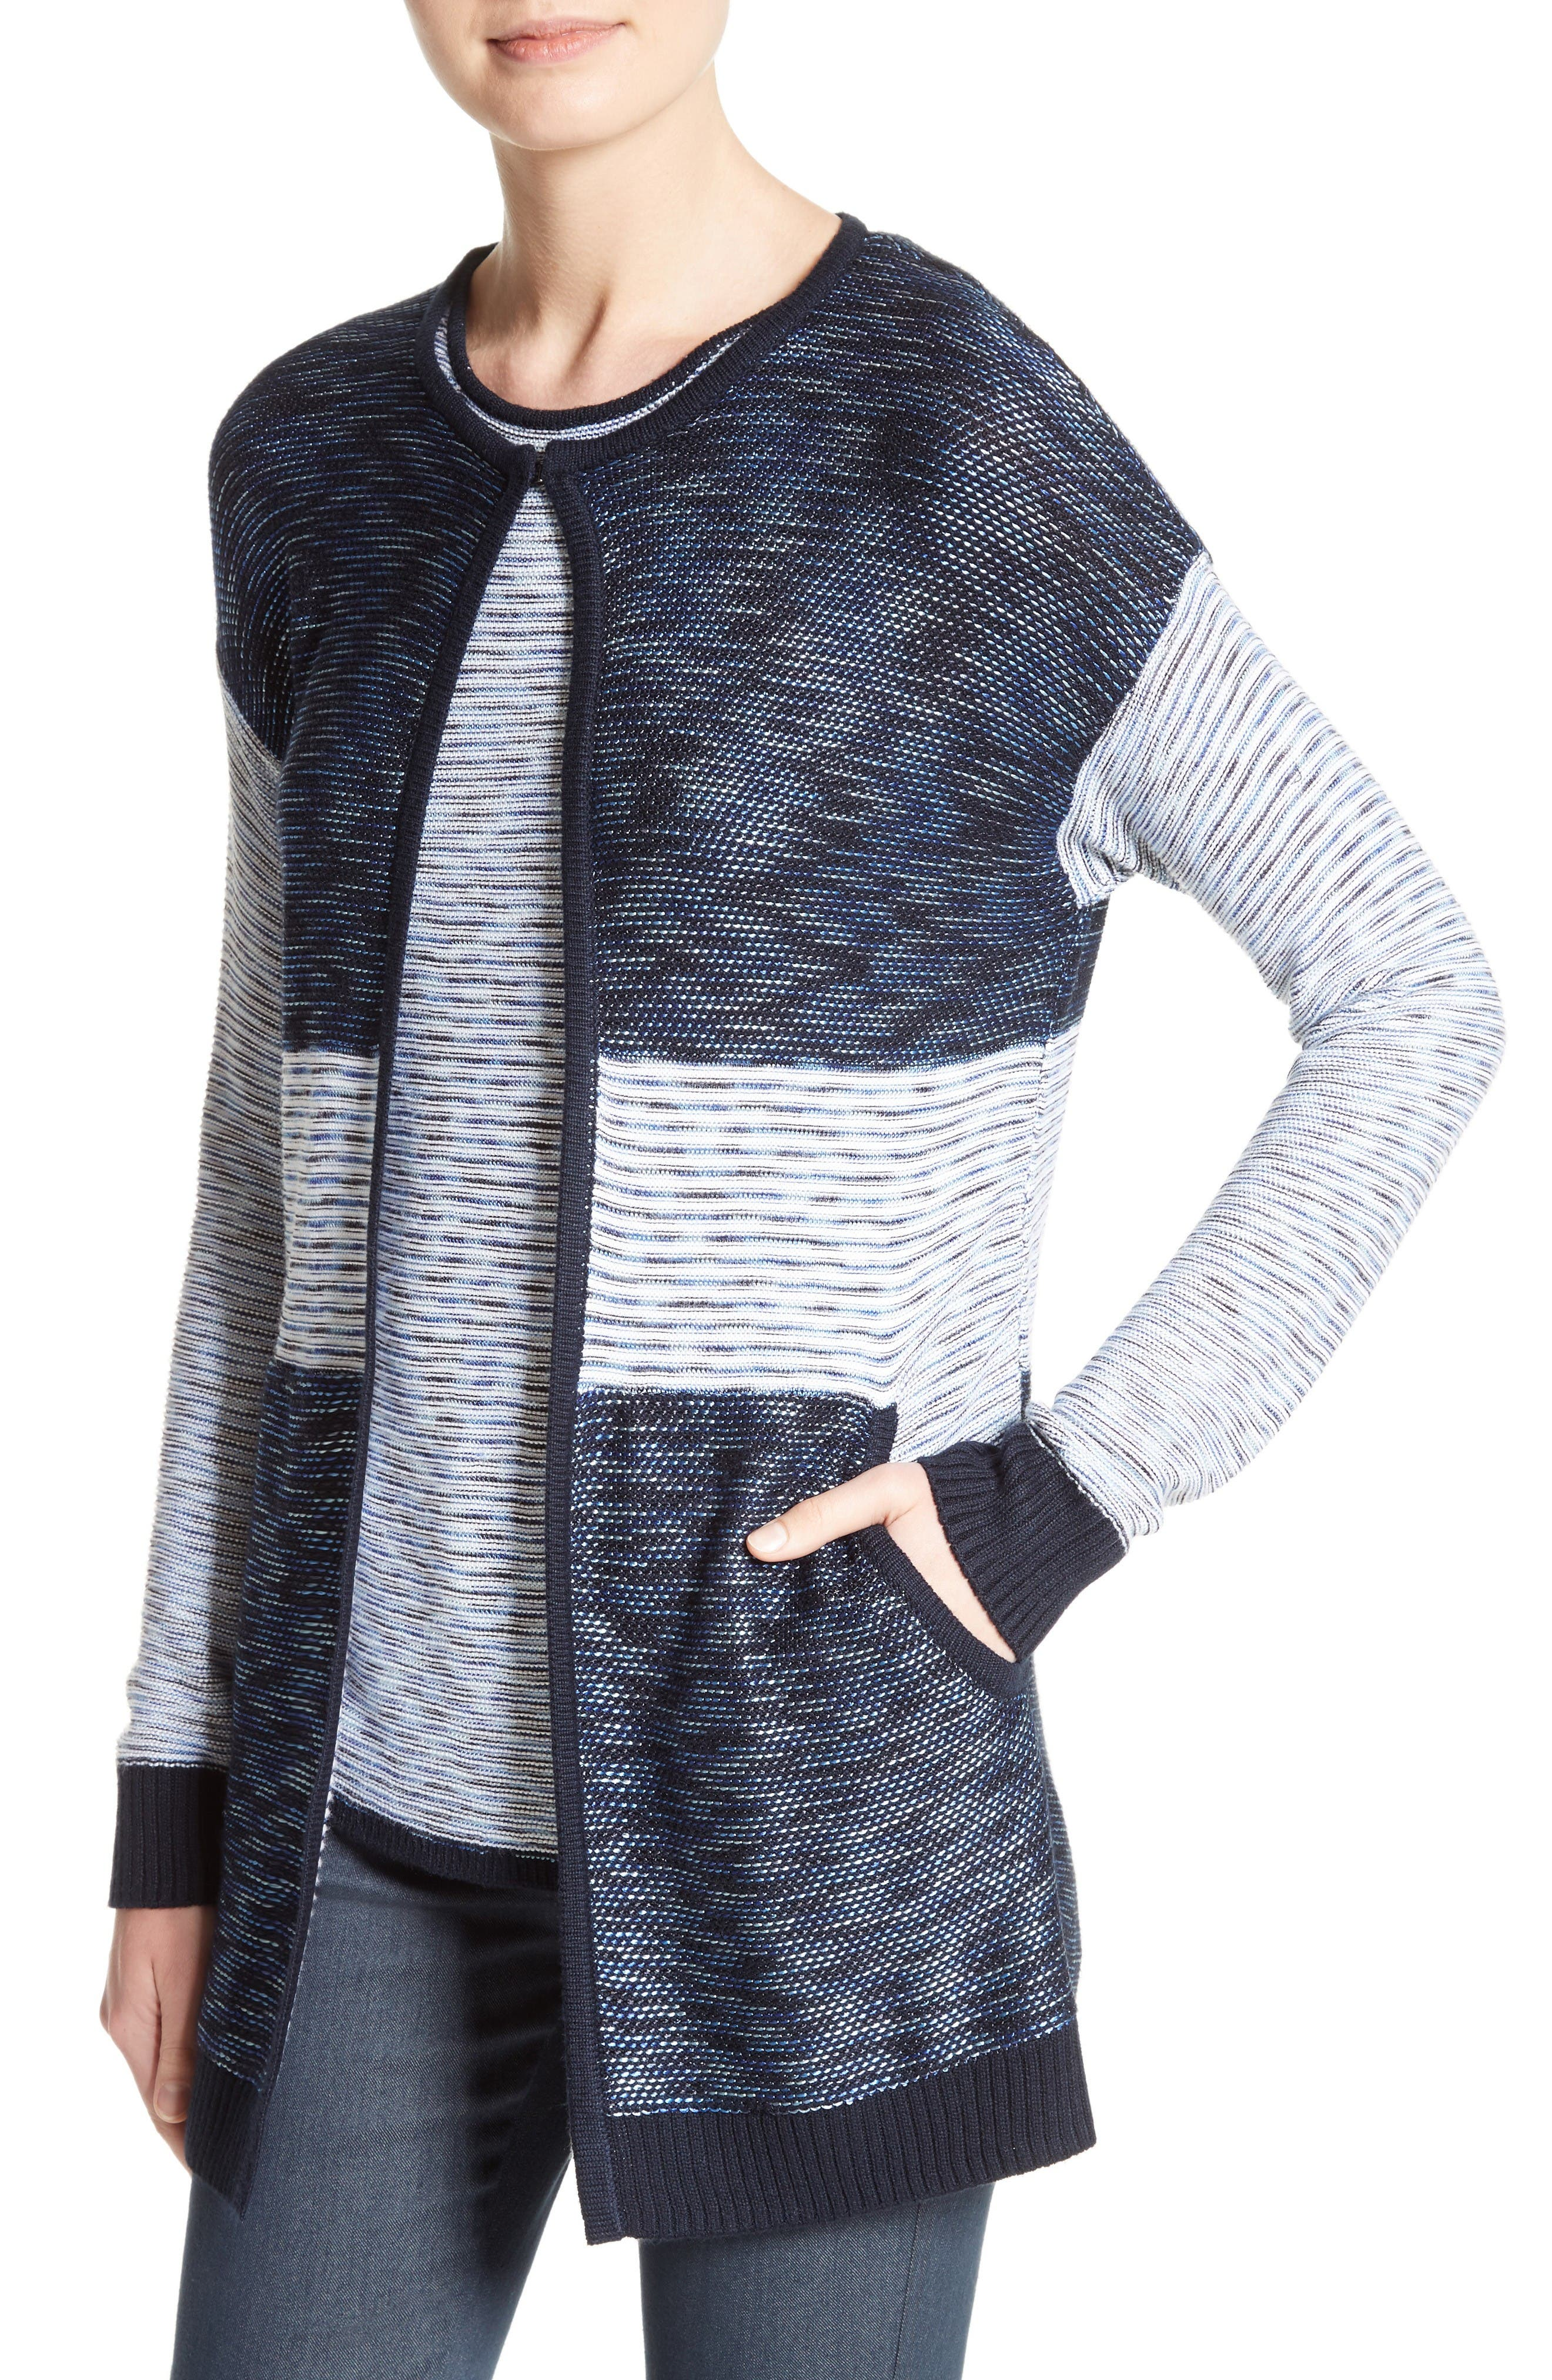 Chambray Effect Links Knit Cardigan,                             Alternate thumbnail 4, color,                             Bianco/ Navy Multi